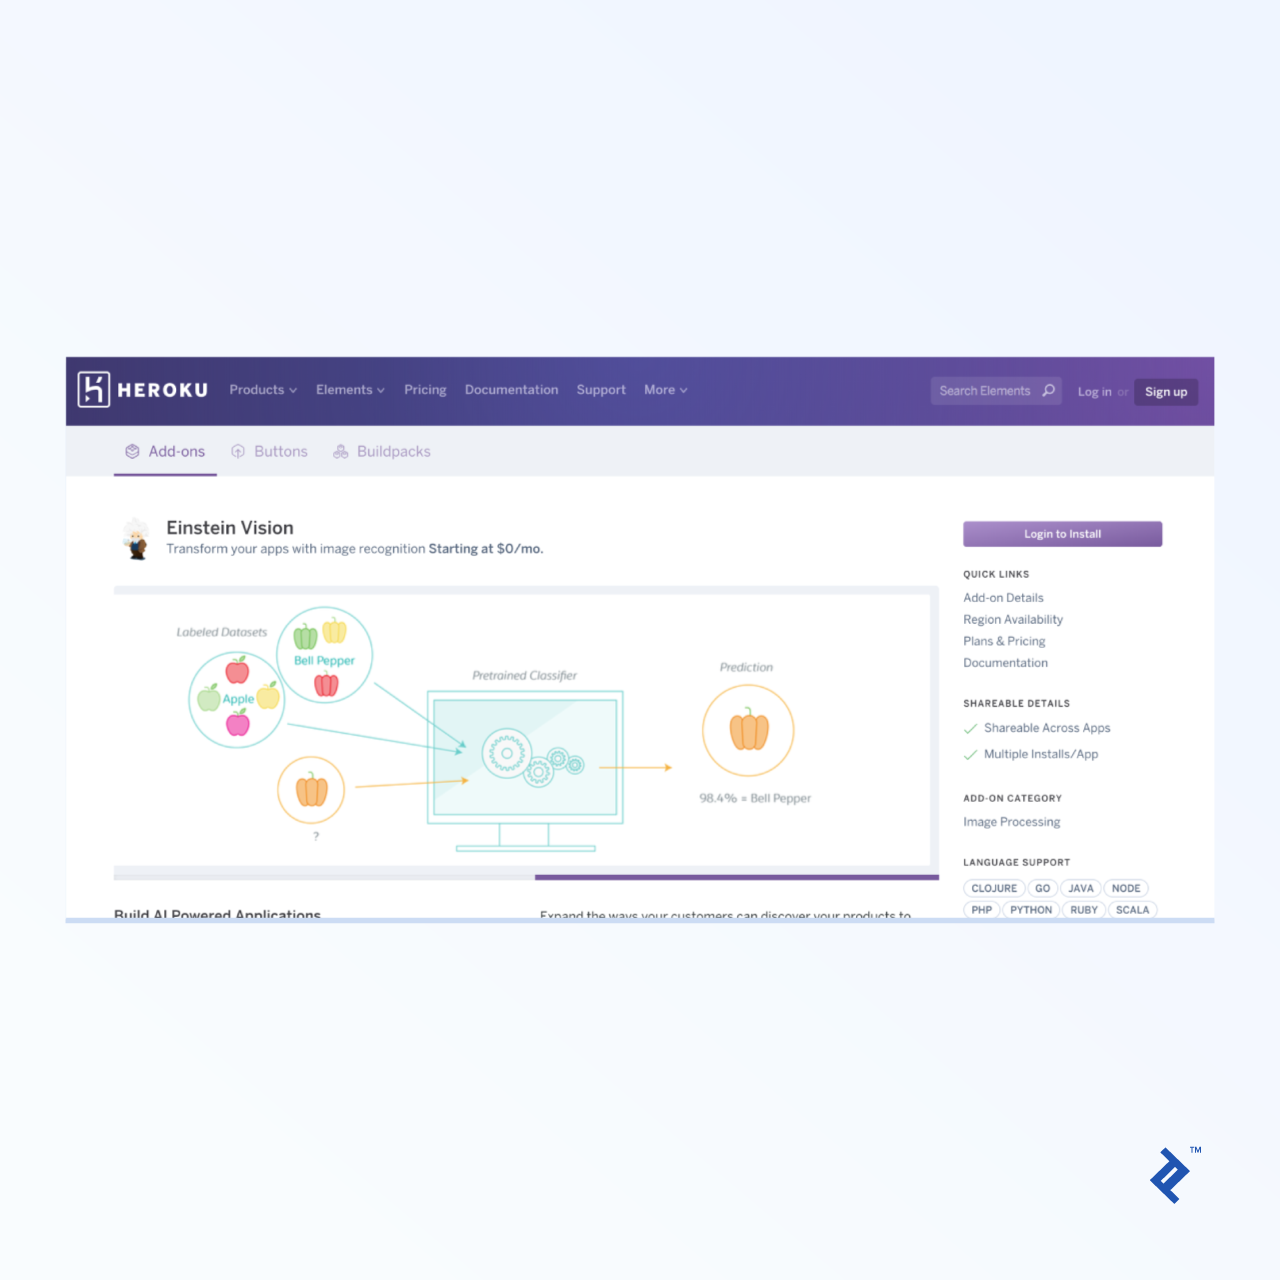 The Heroku Einstein integration page